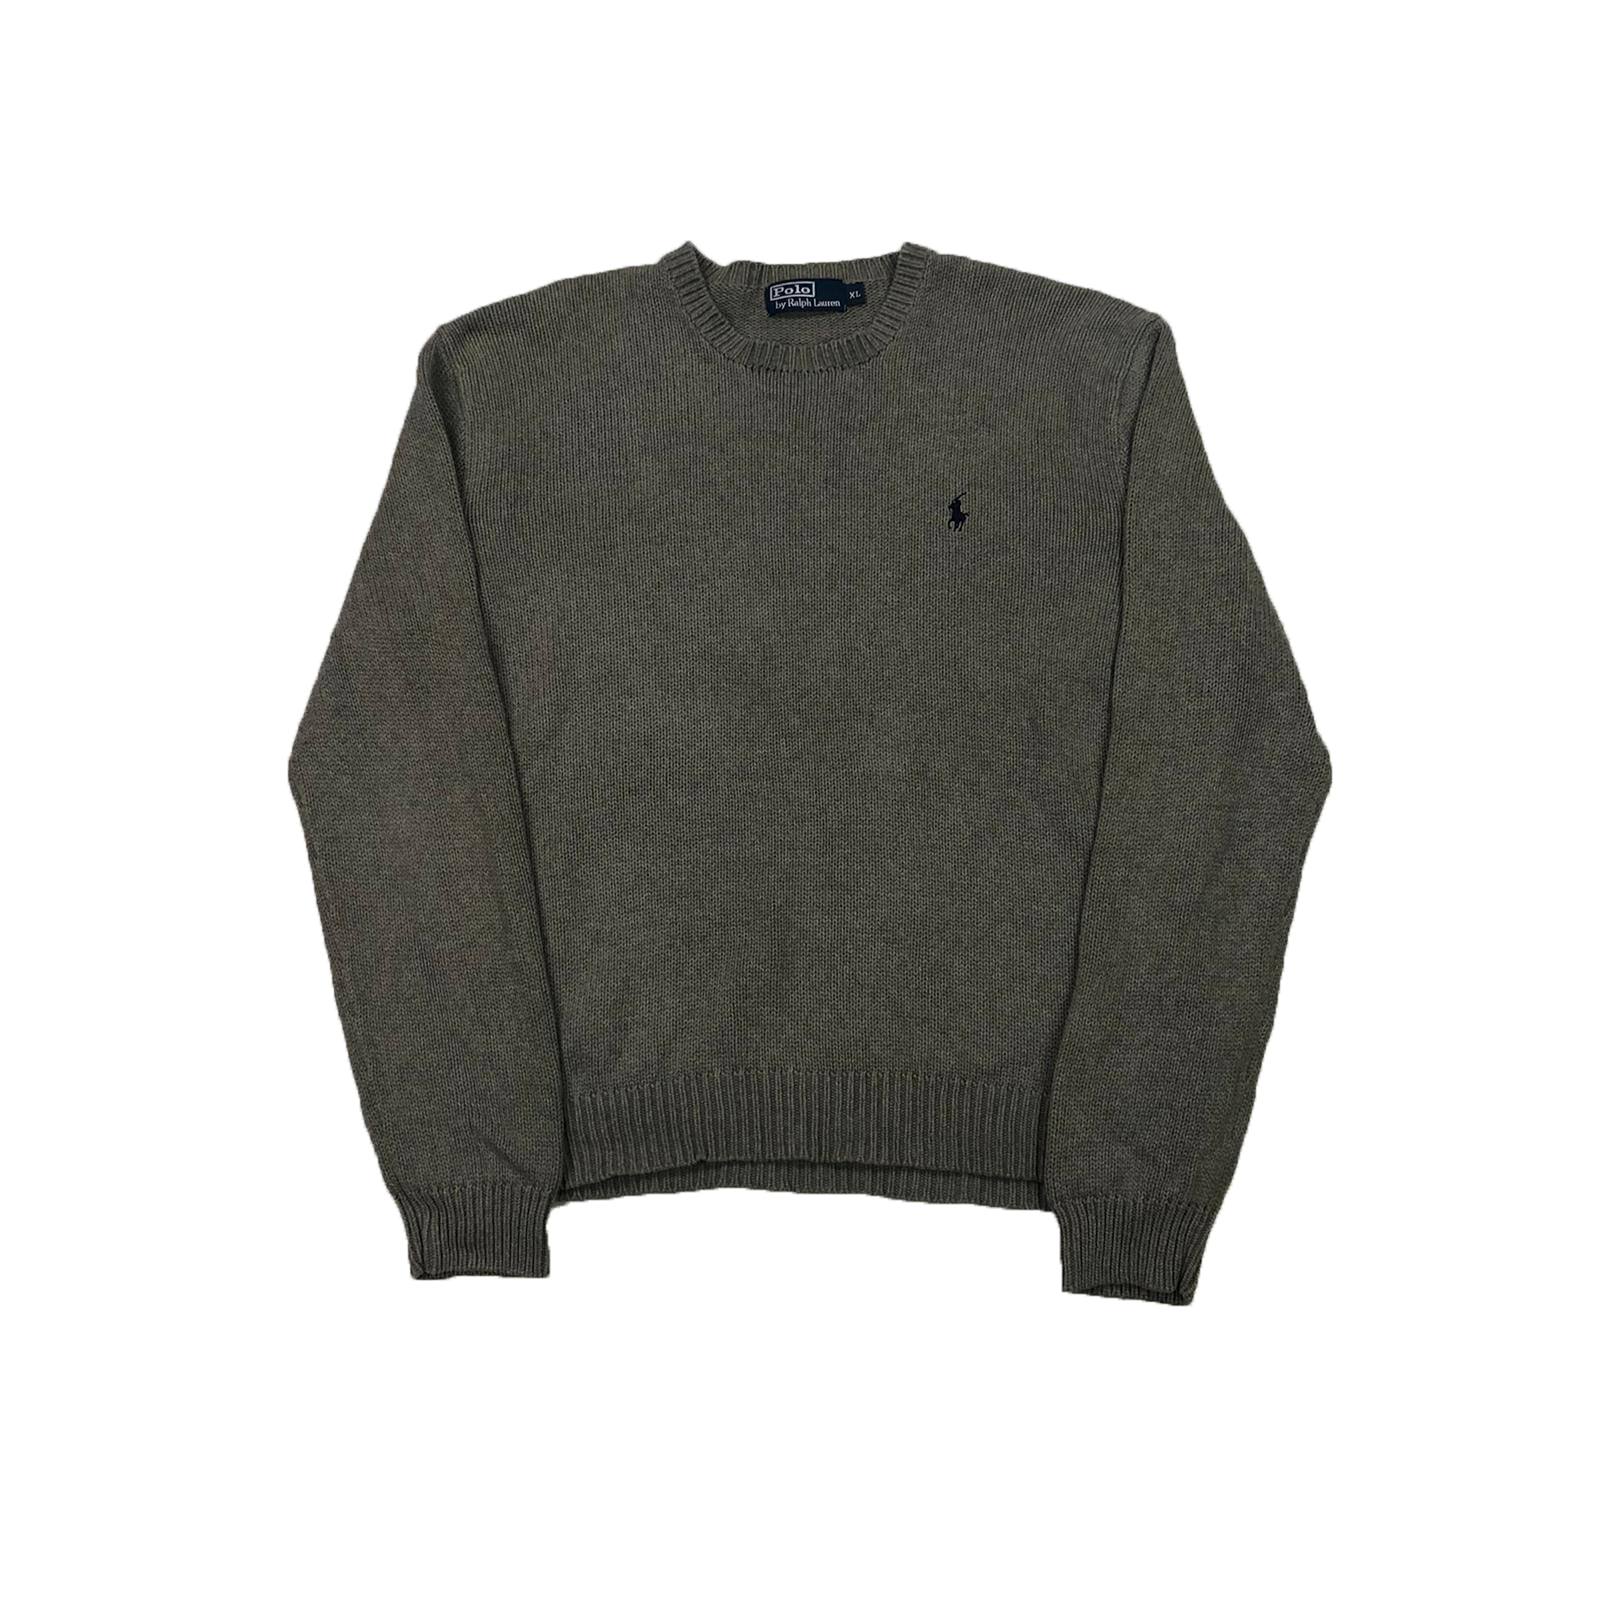 Ralph Lauren knit sweatshirt